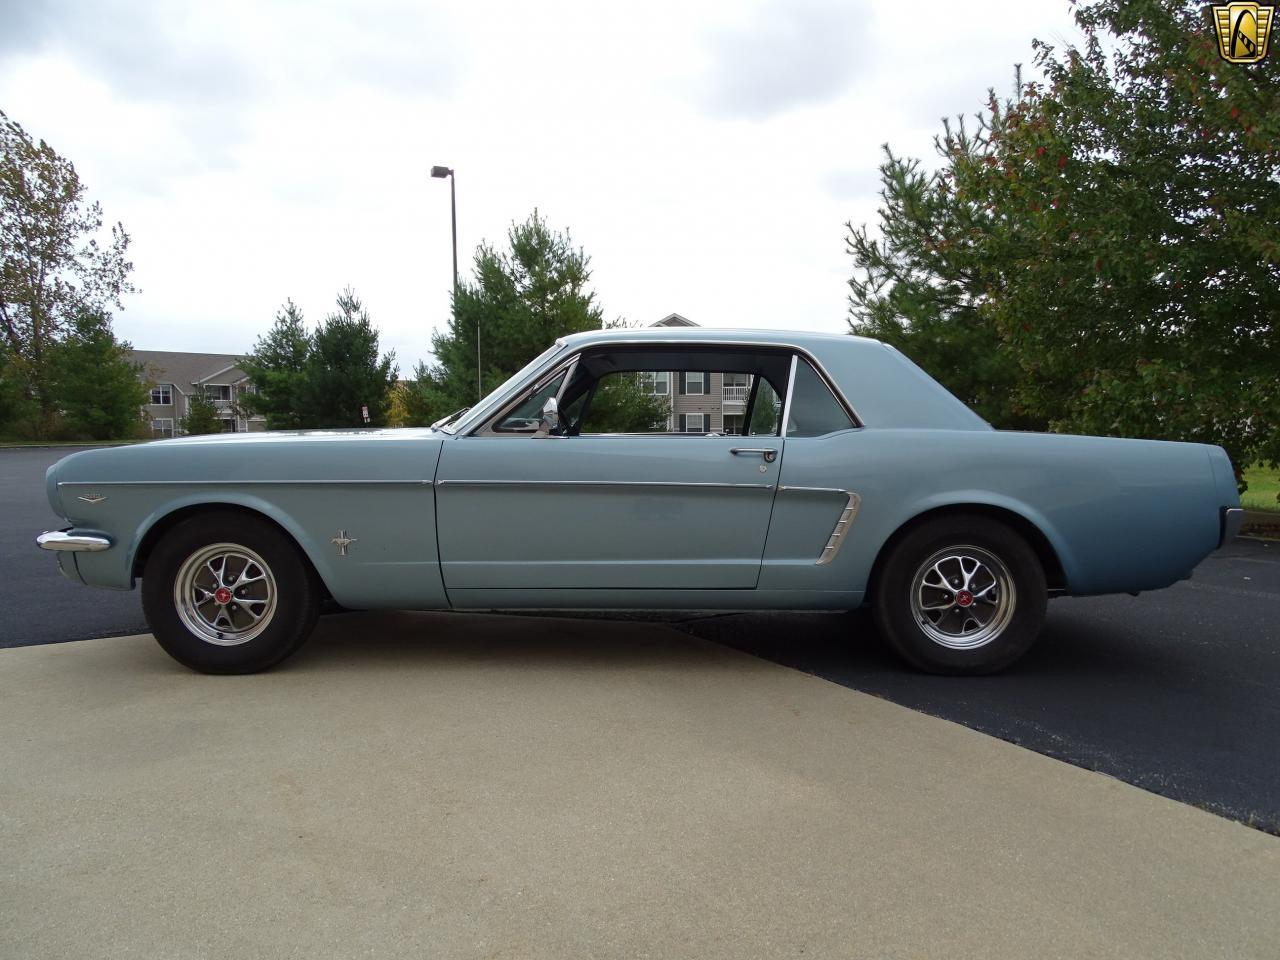 Large Picture of 1965 Ford Mustang located in Illinois - $16,995.00 Offered by Gateway Classic Cars - St. Louis - KDUO